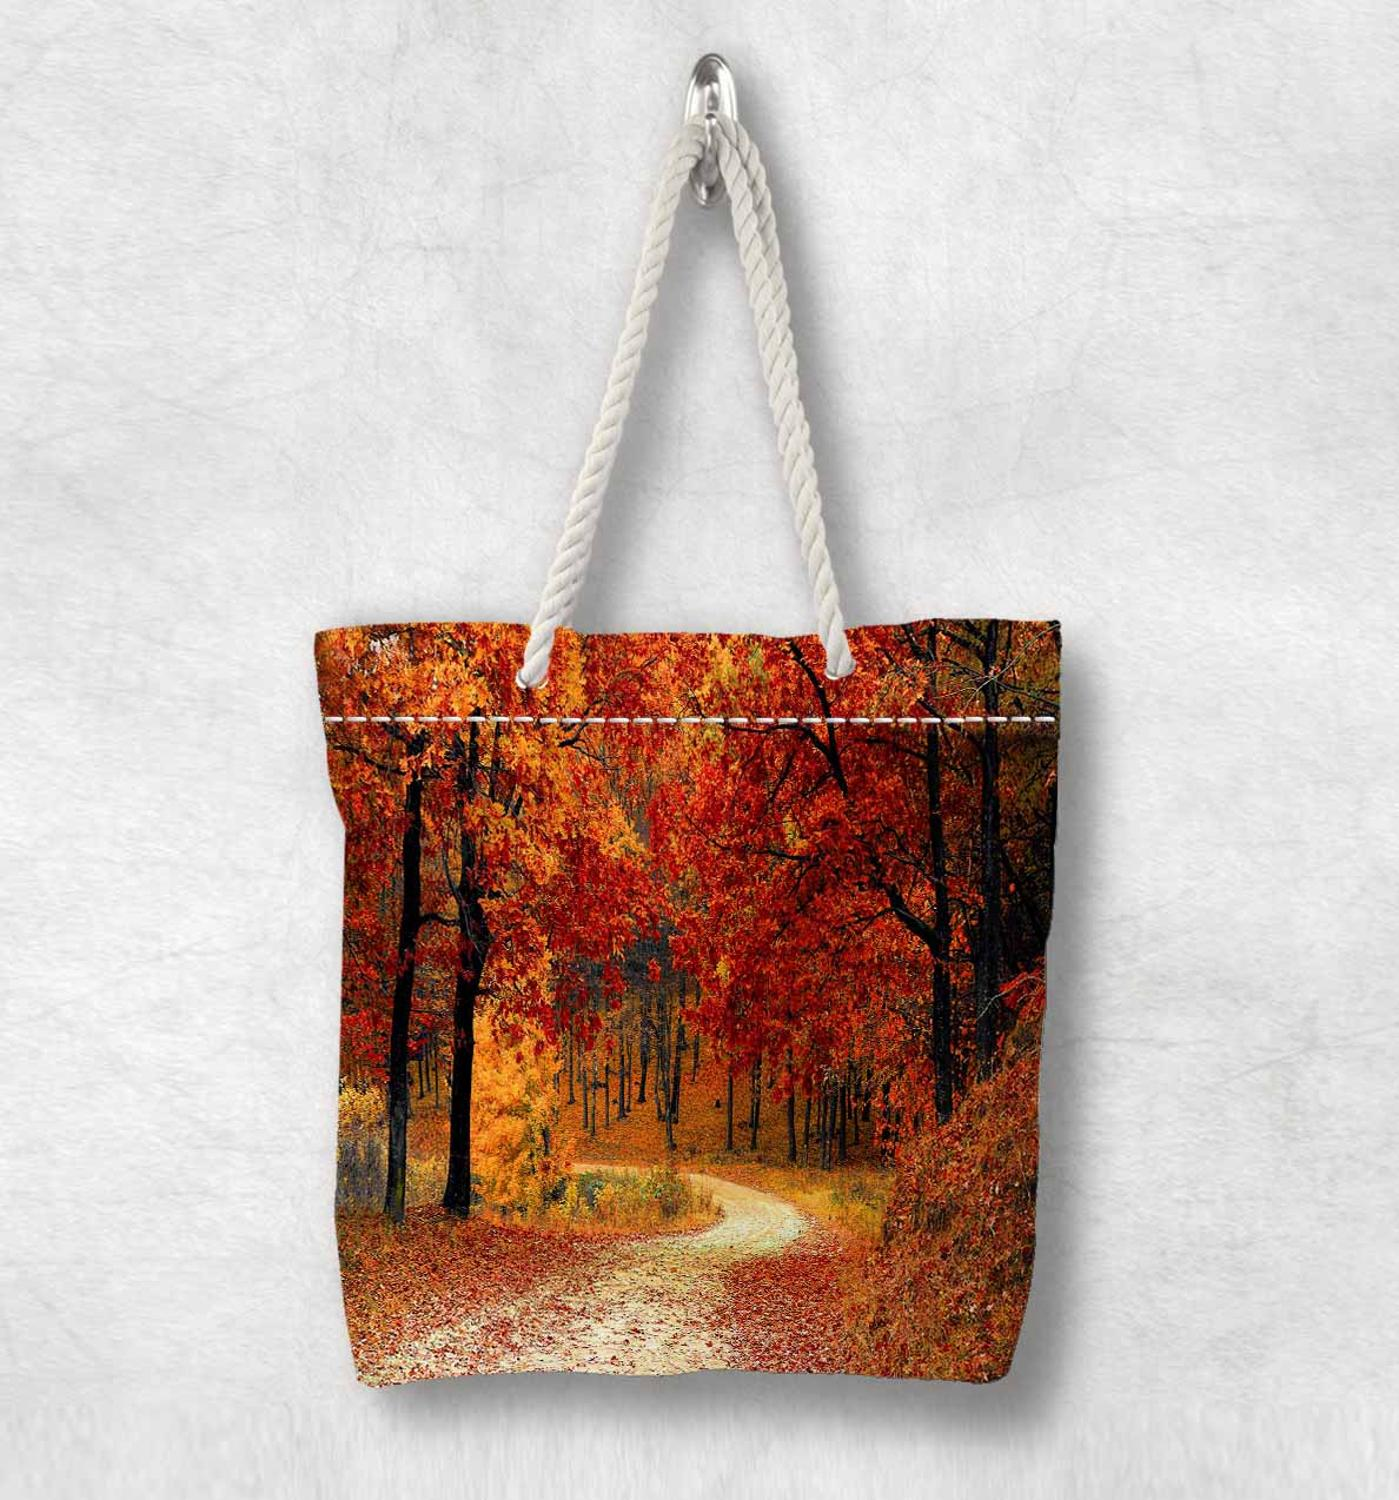 Else Orange Autumn Jungle Trees Way New Fashion White Rope Handle Canvas Bag Cotton Canvas Zippered Tote Bag Shoulder Bag